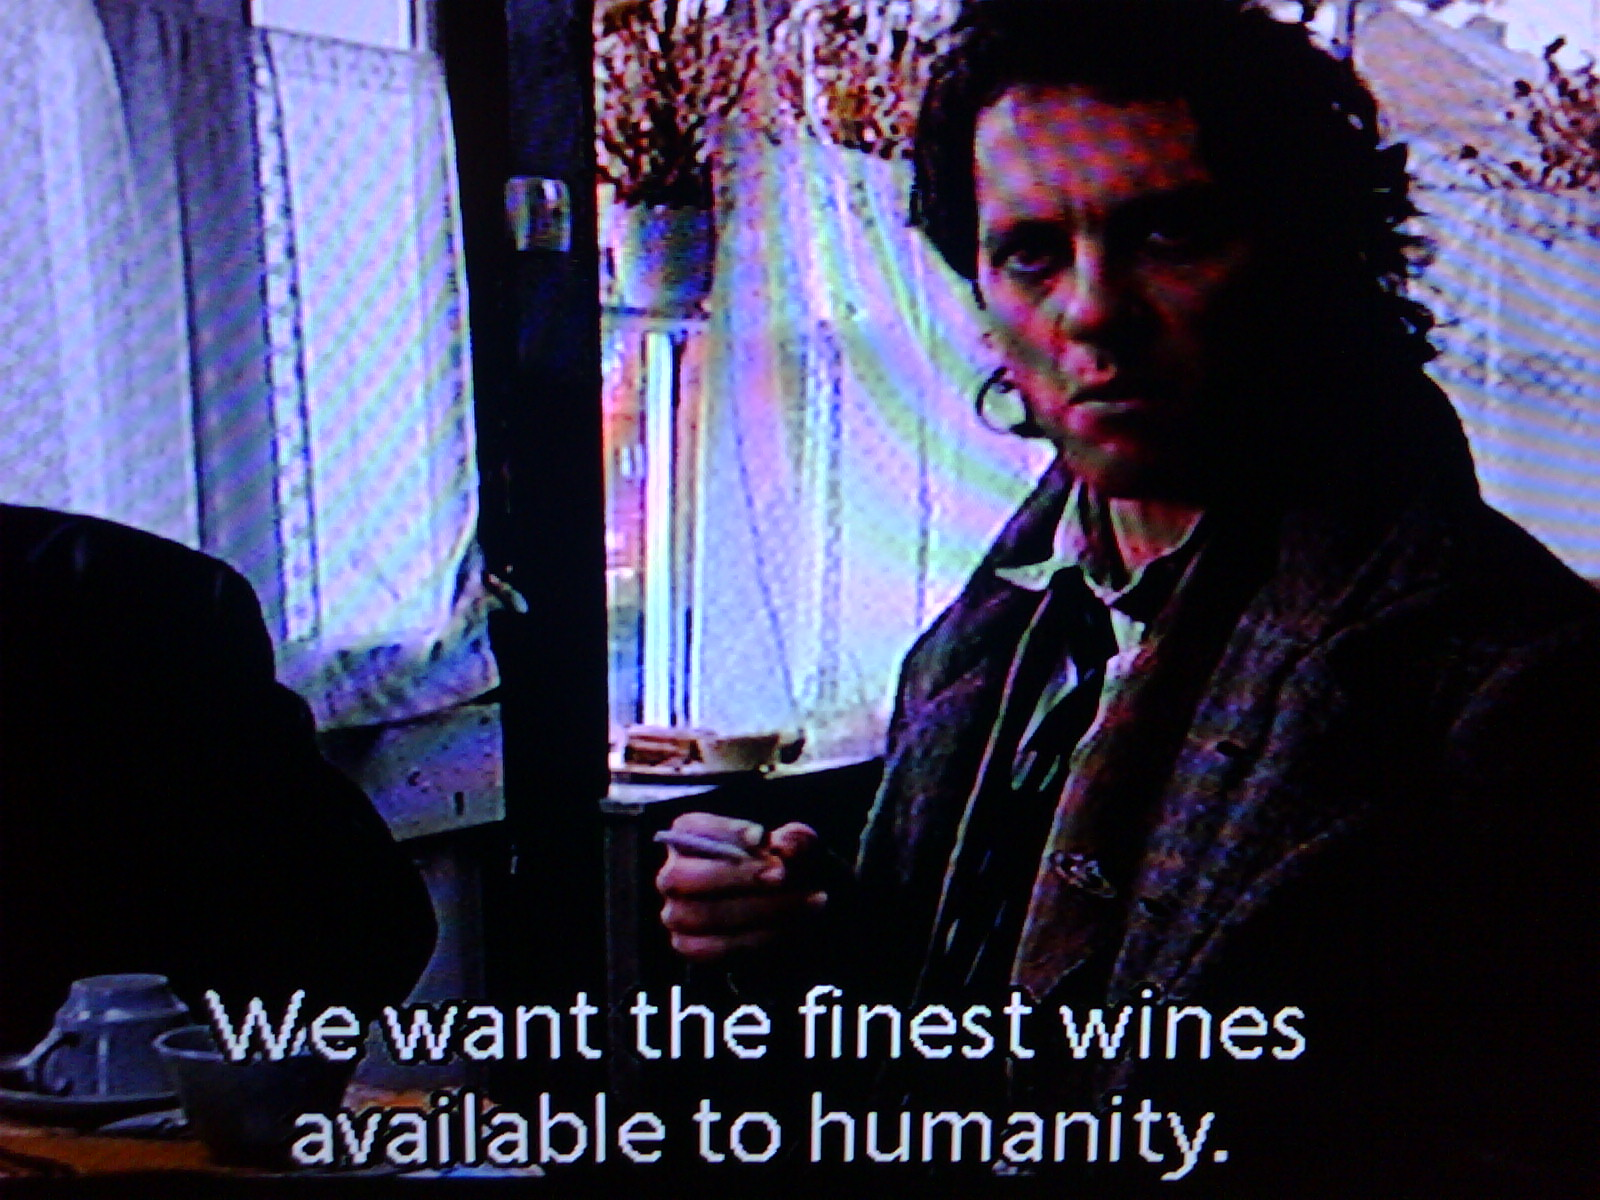 withnail and i. i recommend.